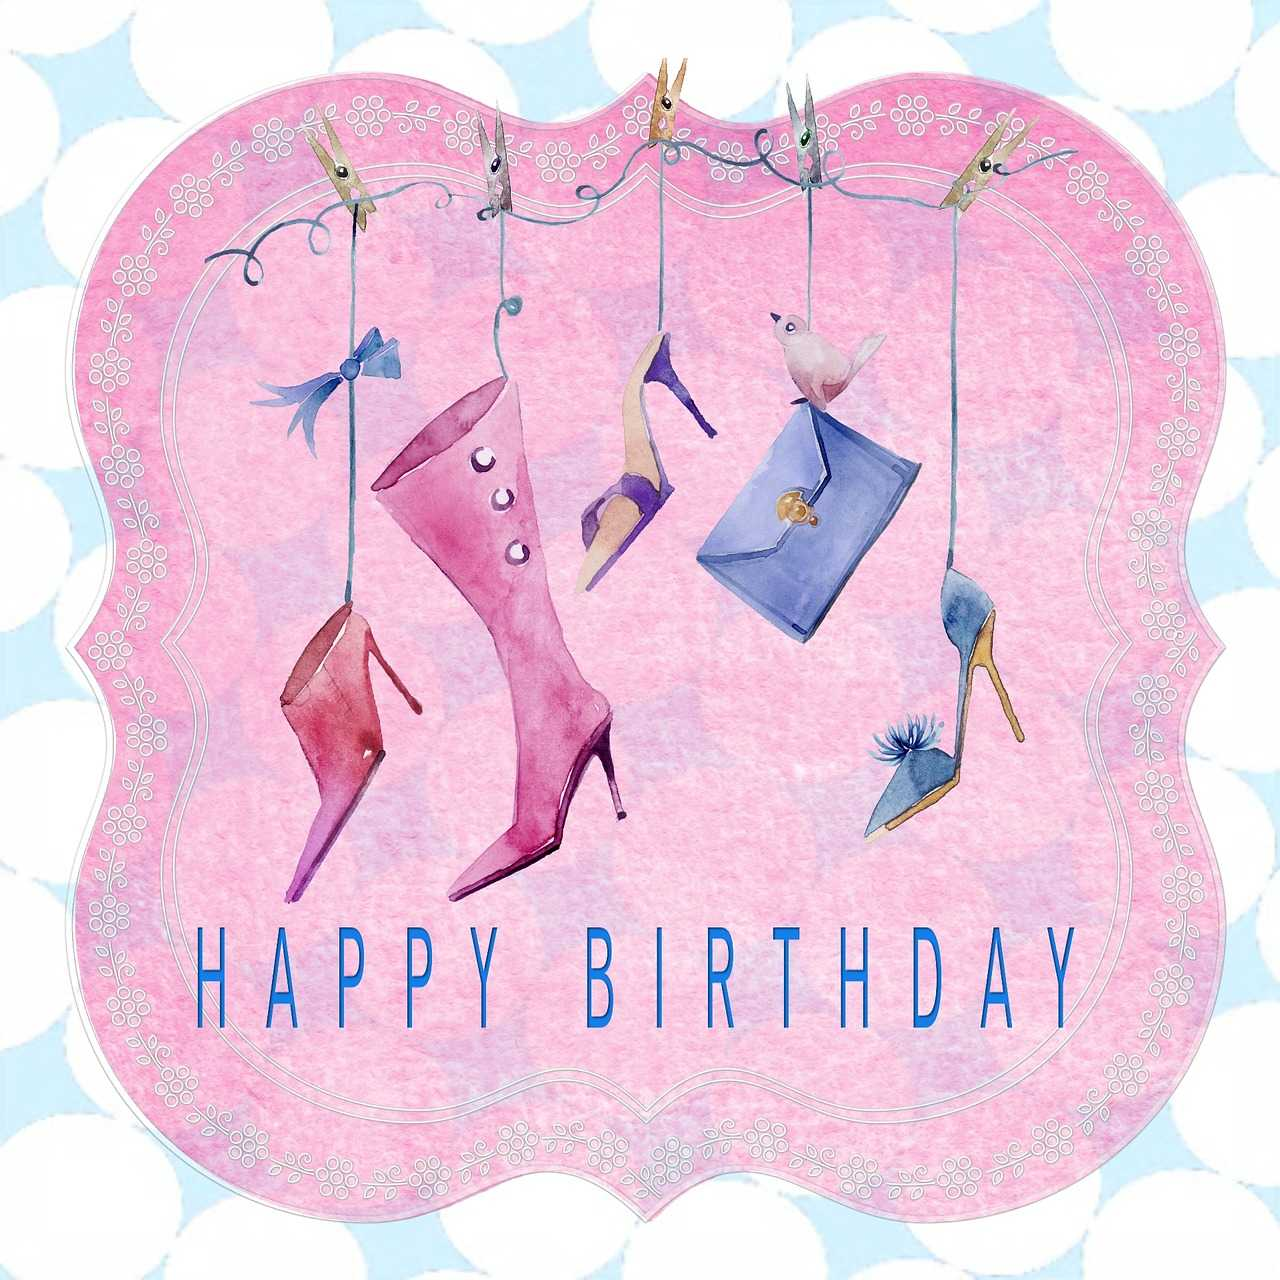 Happy Birthday Wishes Funny Animation Greetings Cards For